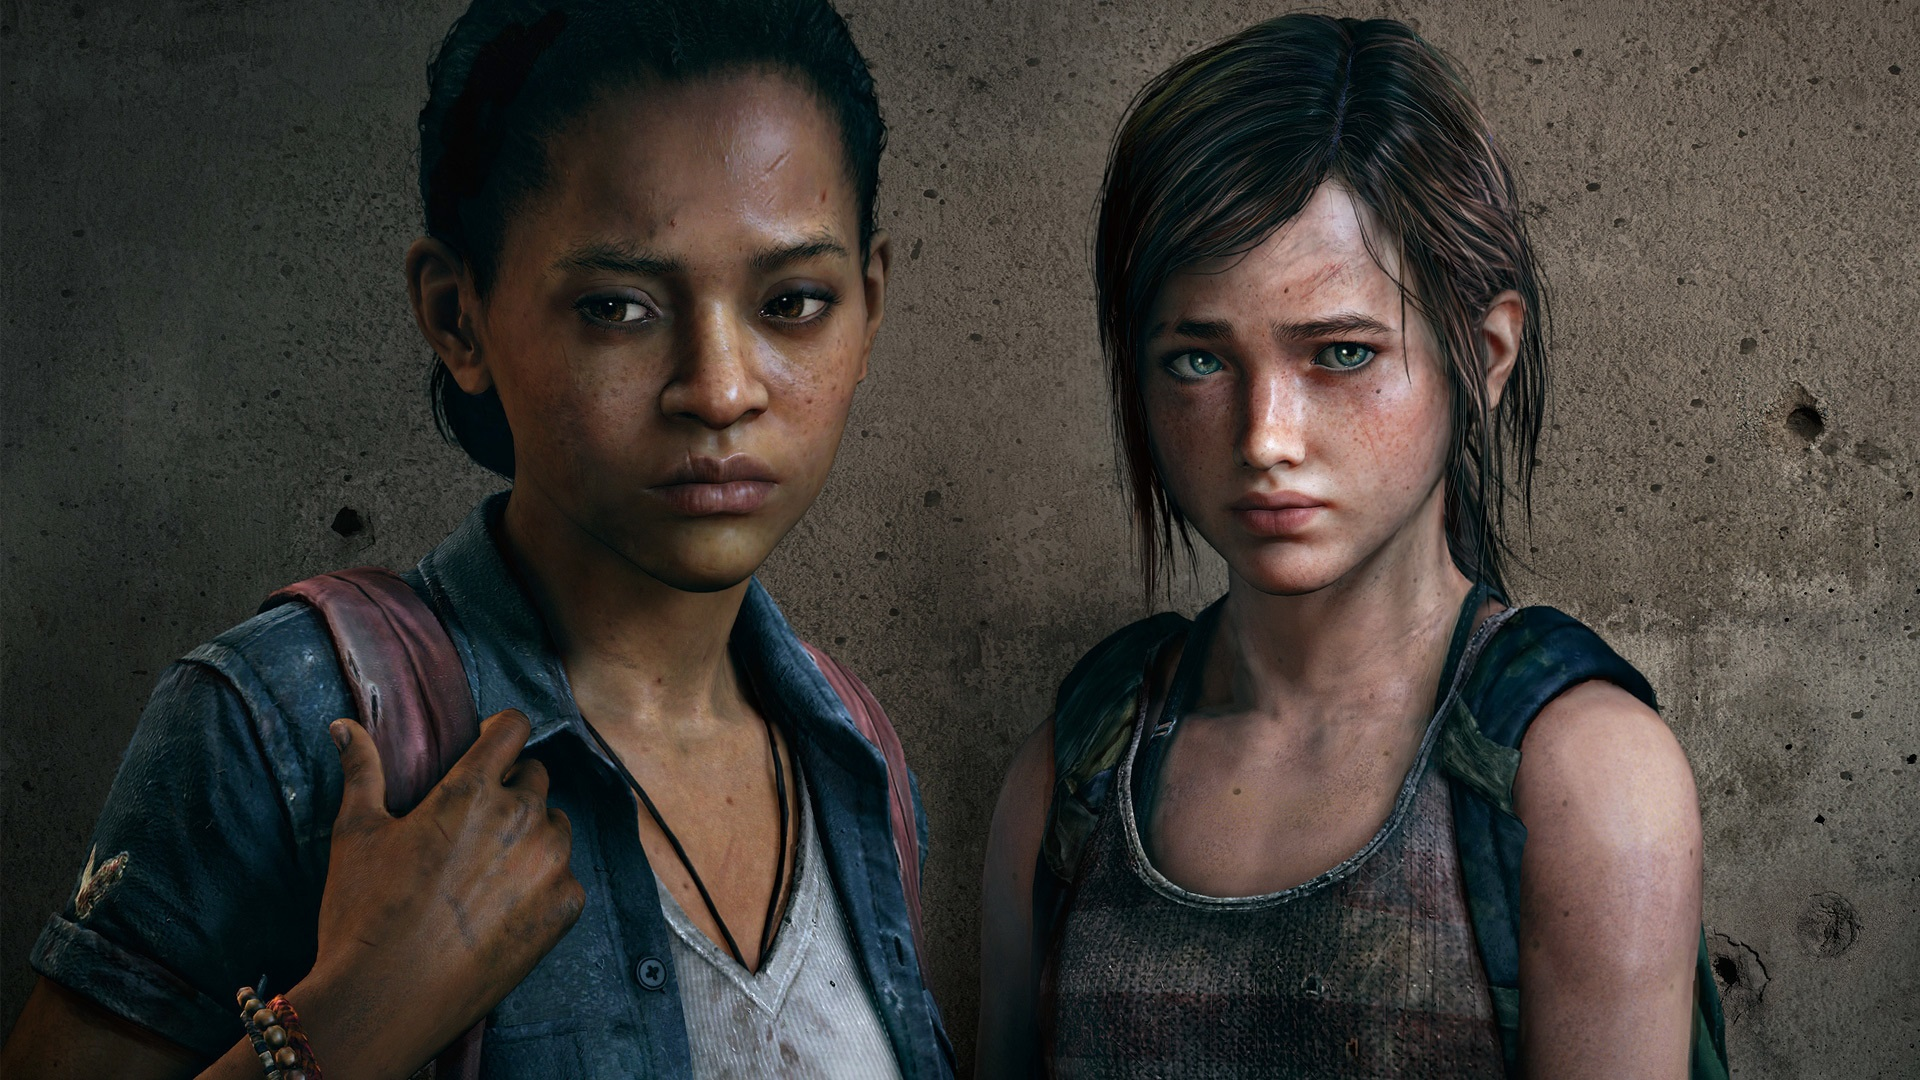 Wallpaper The Last Of Us Left Behind 1920x1080 Full Hd 2k Picture